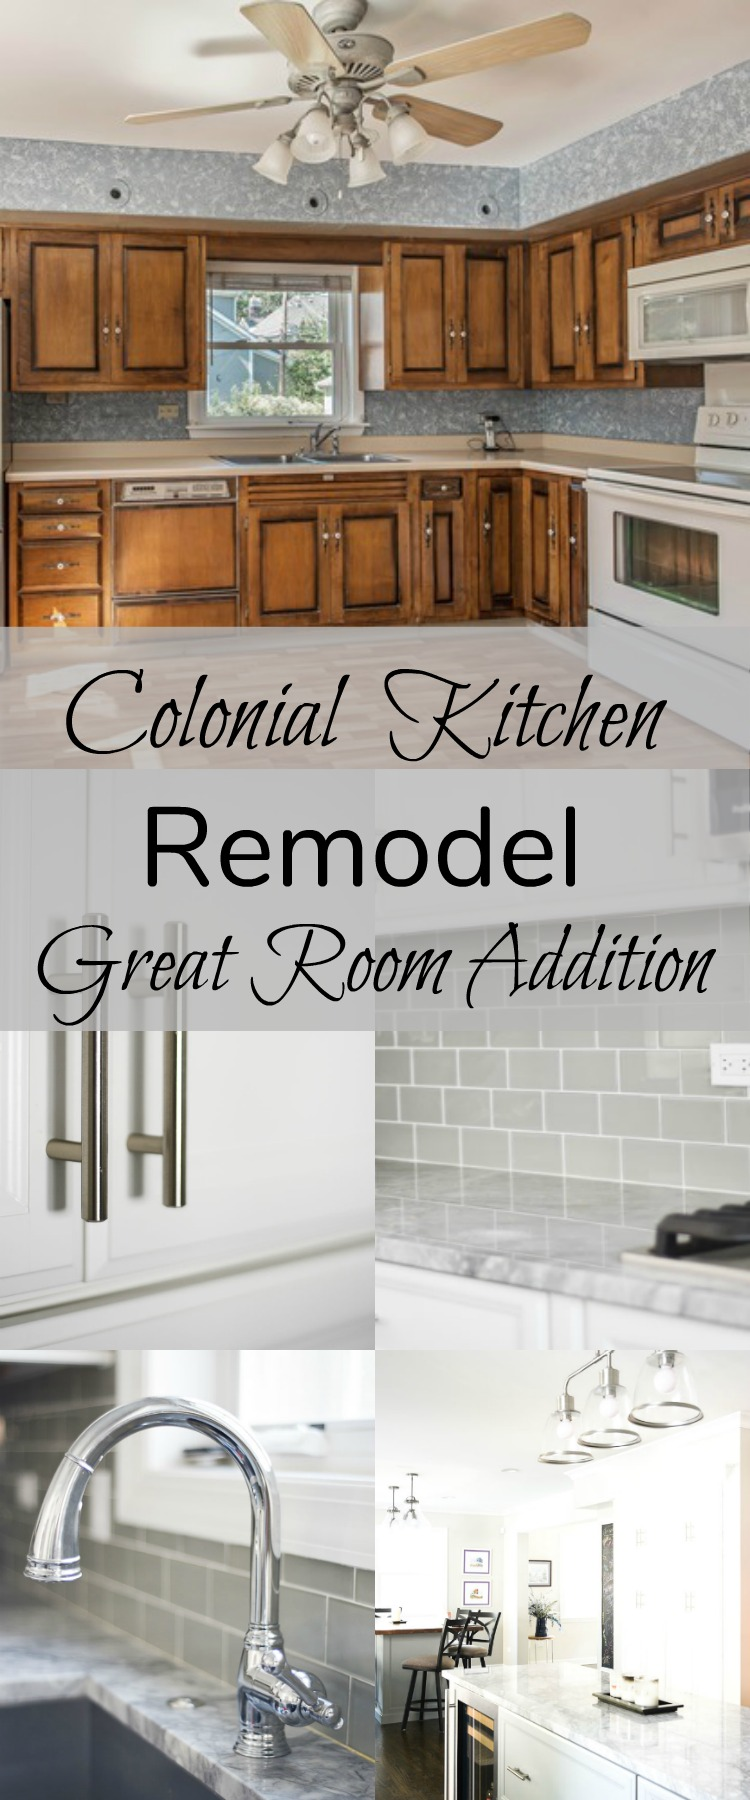 Colonial Kitchen and Great Room Remodel- Home with Keki